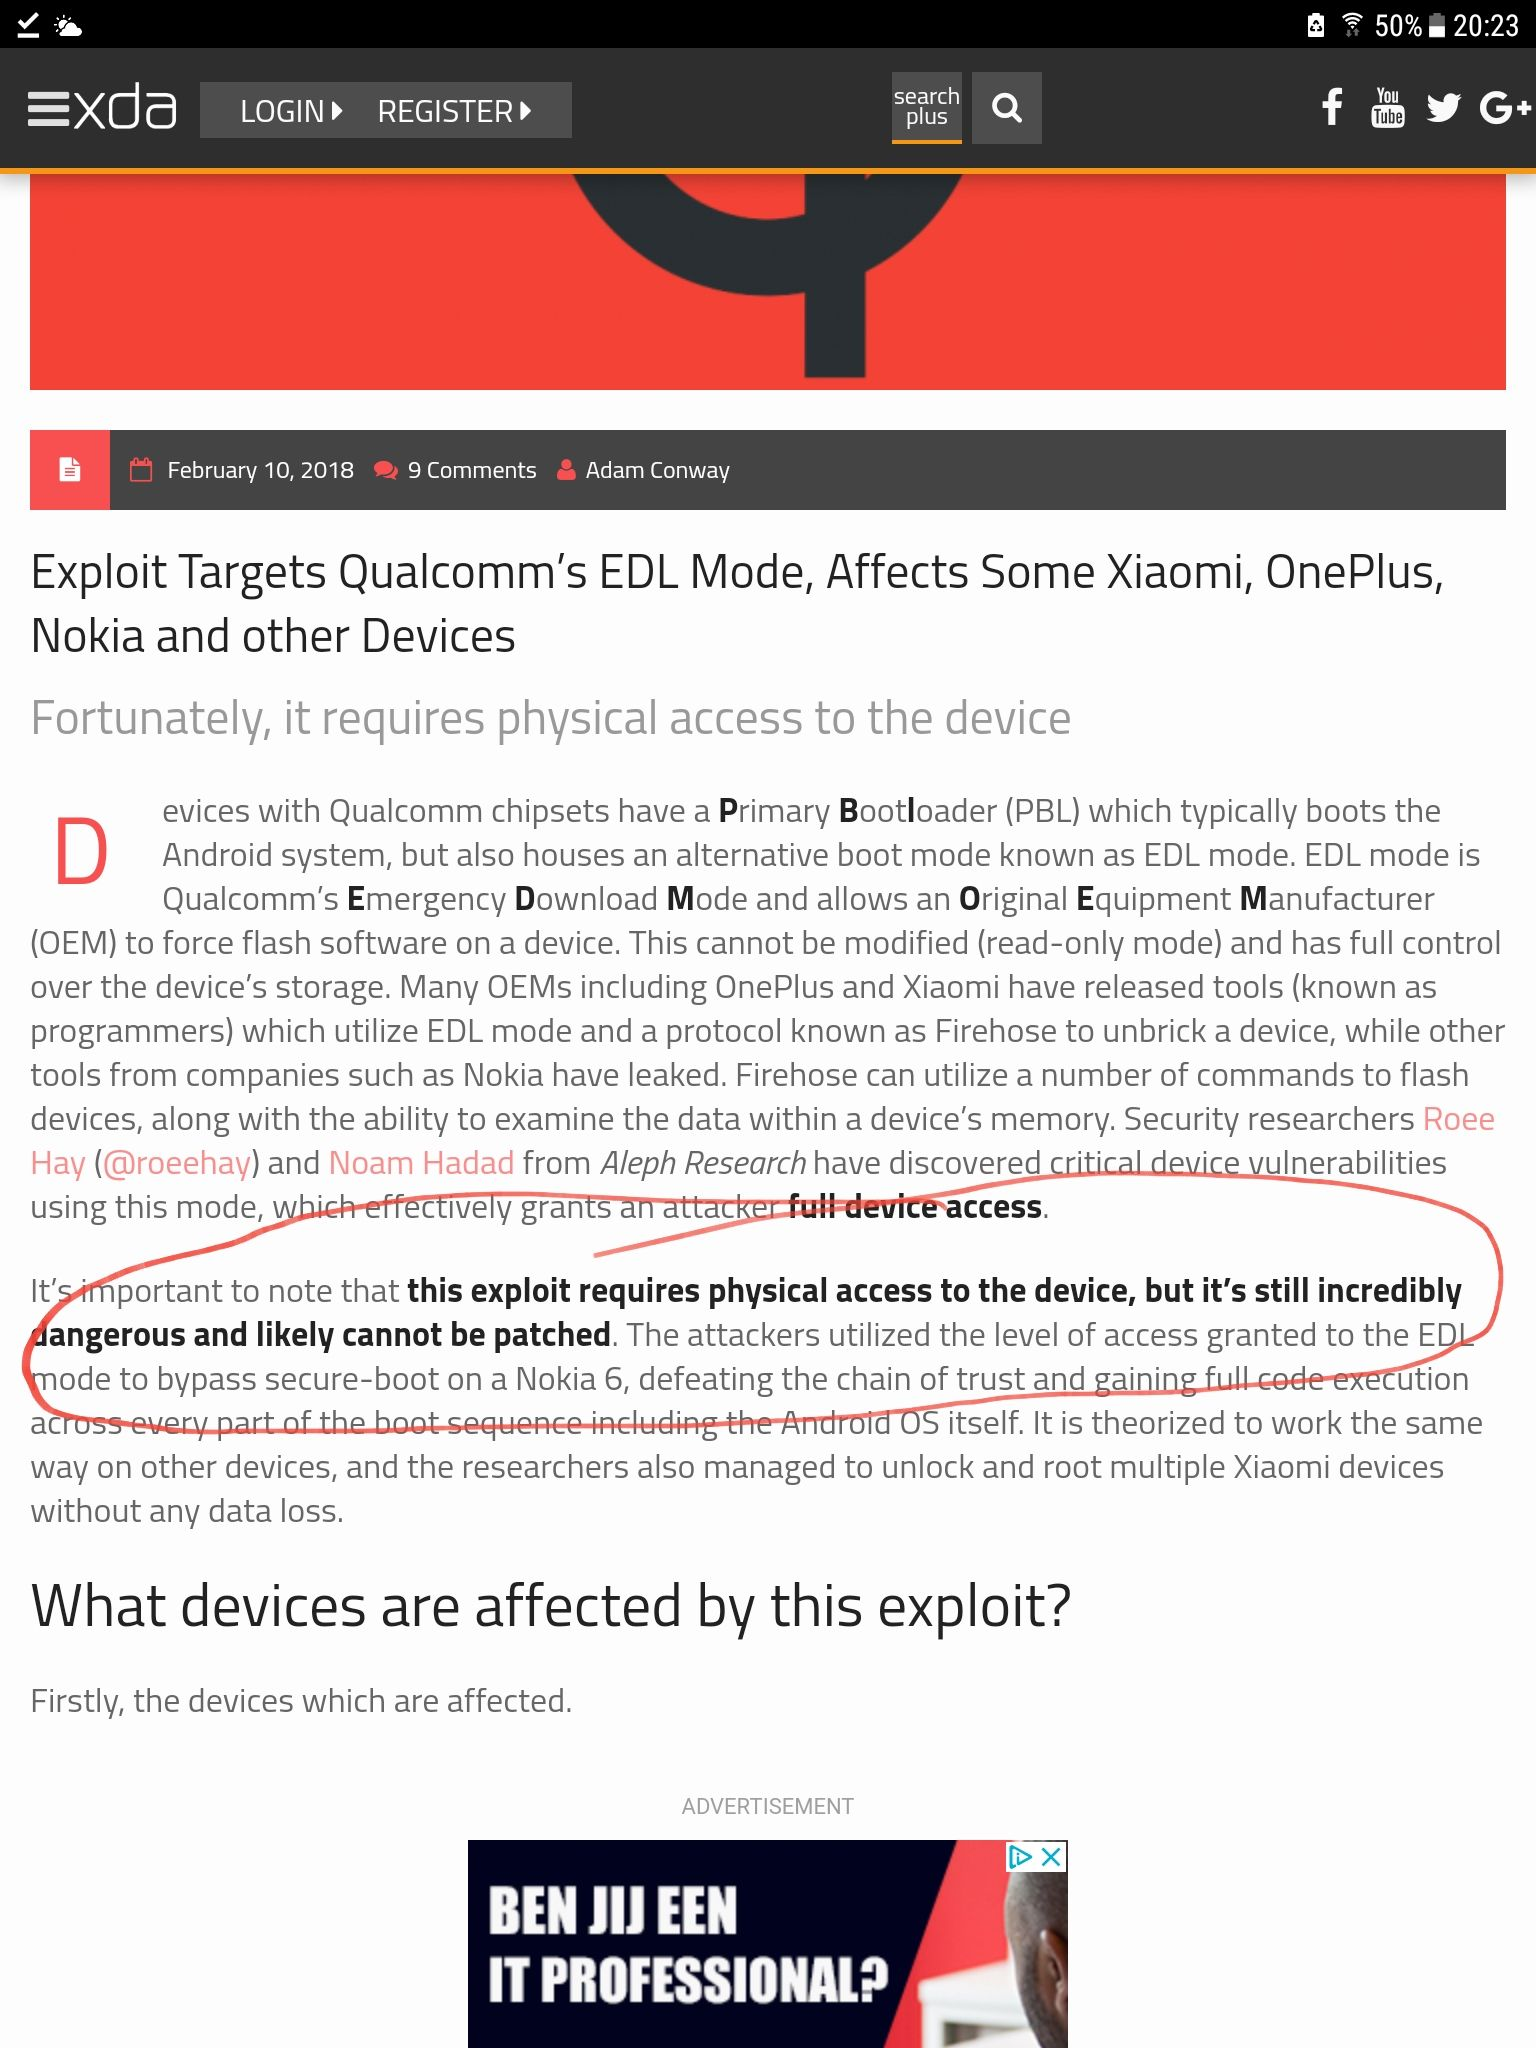 Exploit targets Qualcomm EDL mode, affects OnePlus and other